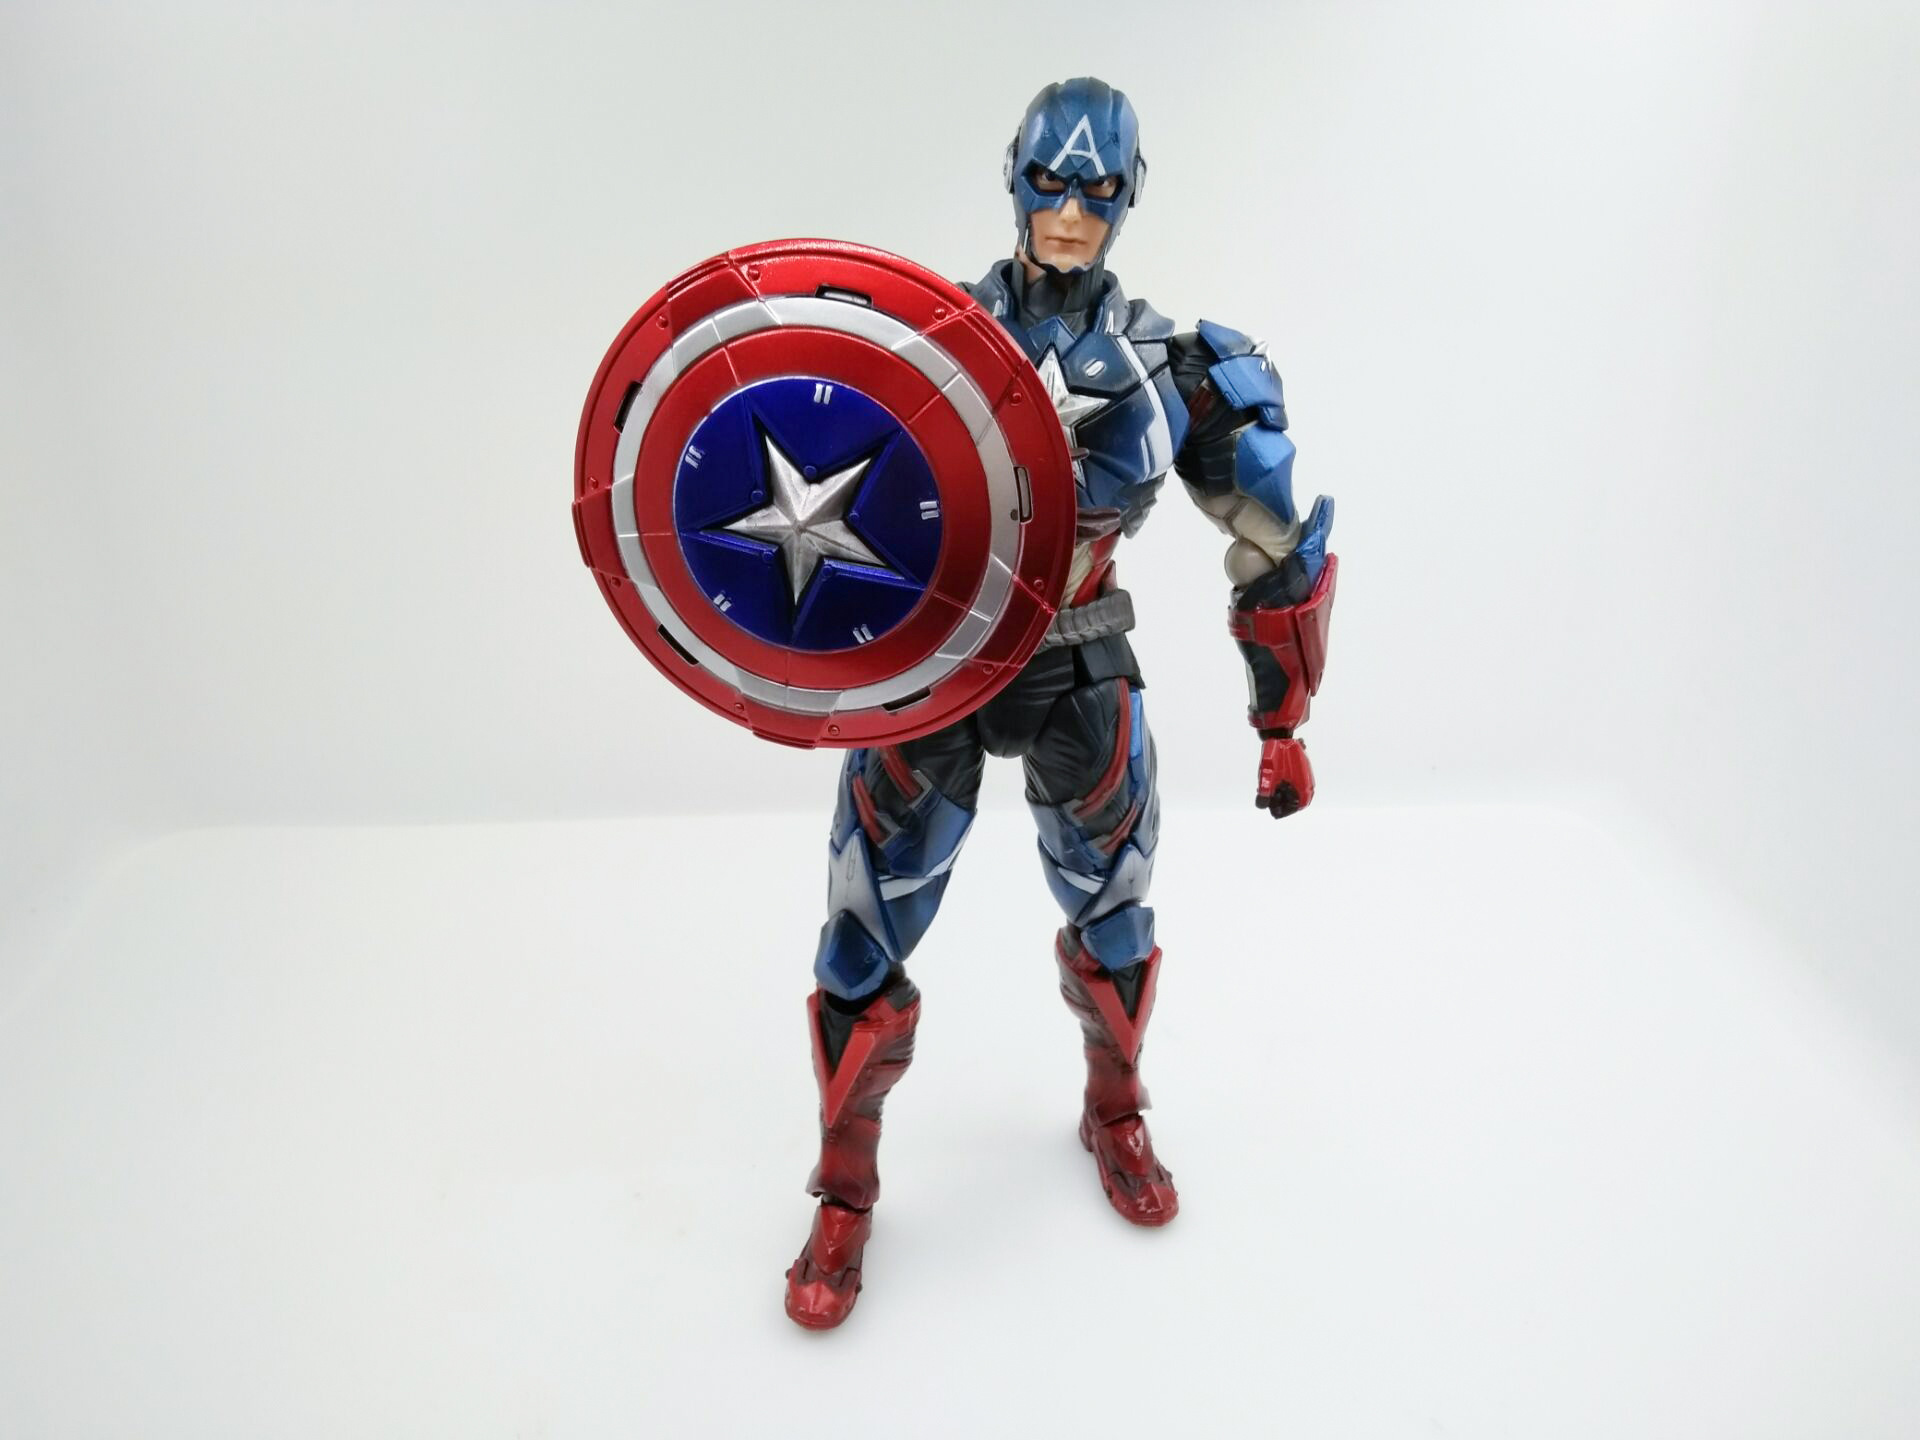 WVW 25.5CM Hot Sale The Avengers Movie Hero Captain America Play Arts Model PVC Toy Action Figure Decoration For Collection Gift new hot 27cm avengers super hero captain america enhanced version action figure toys doll collection christmas toy with box